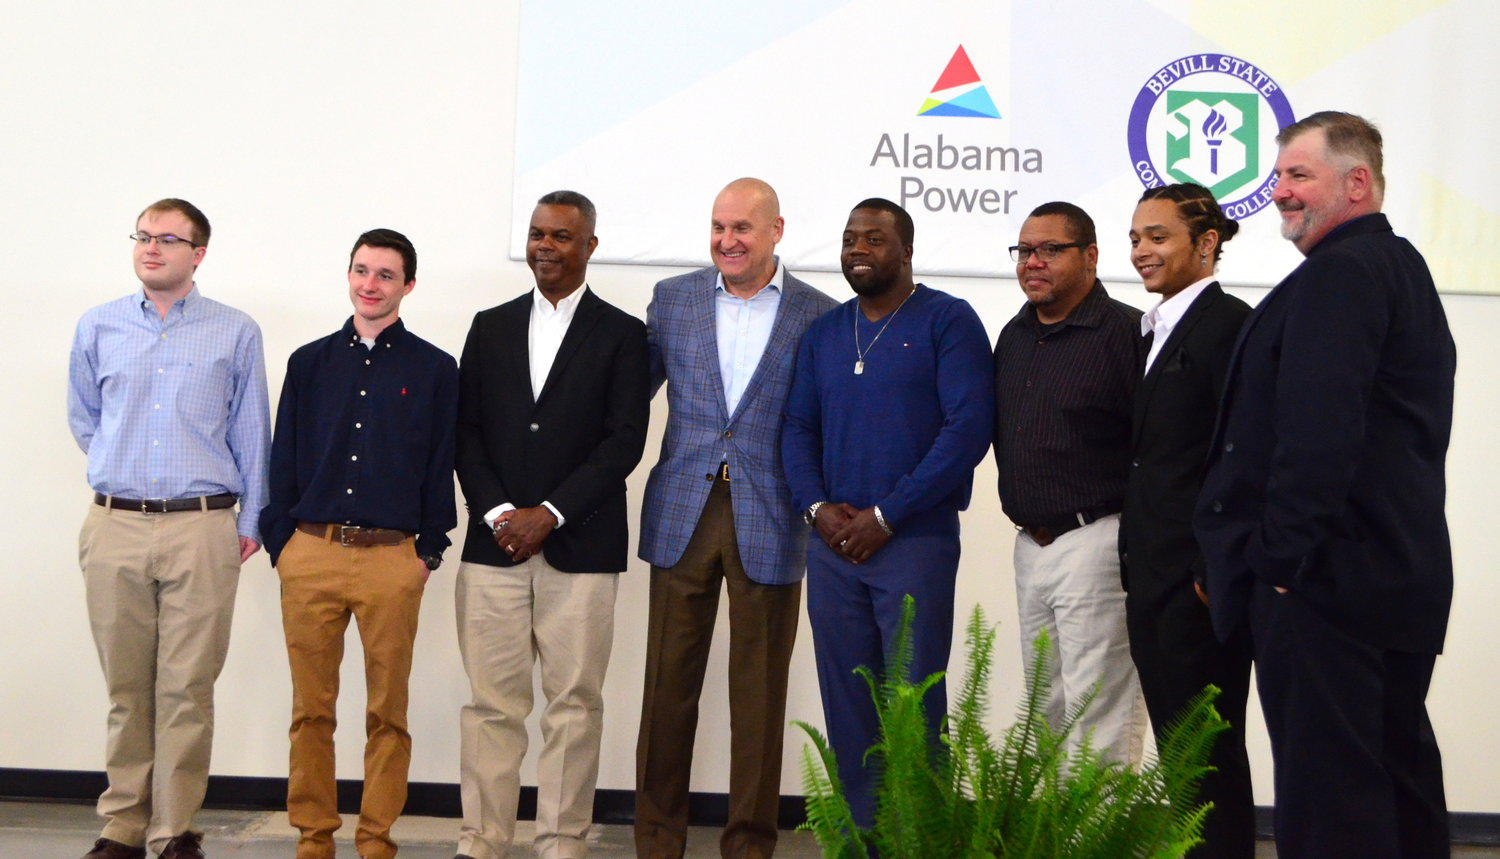 Graduates of the HVAC Fast Track program are pictured with Jeff Peoples of Alabama Power.